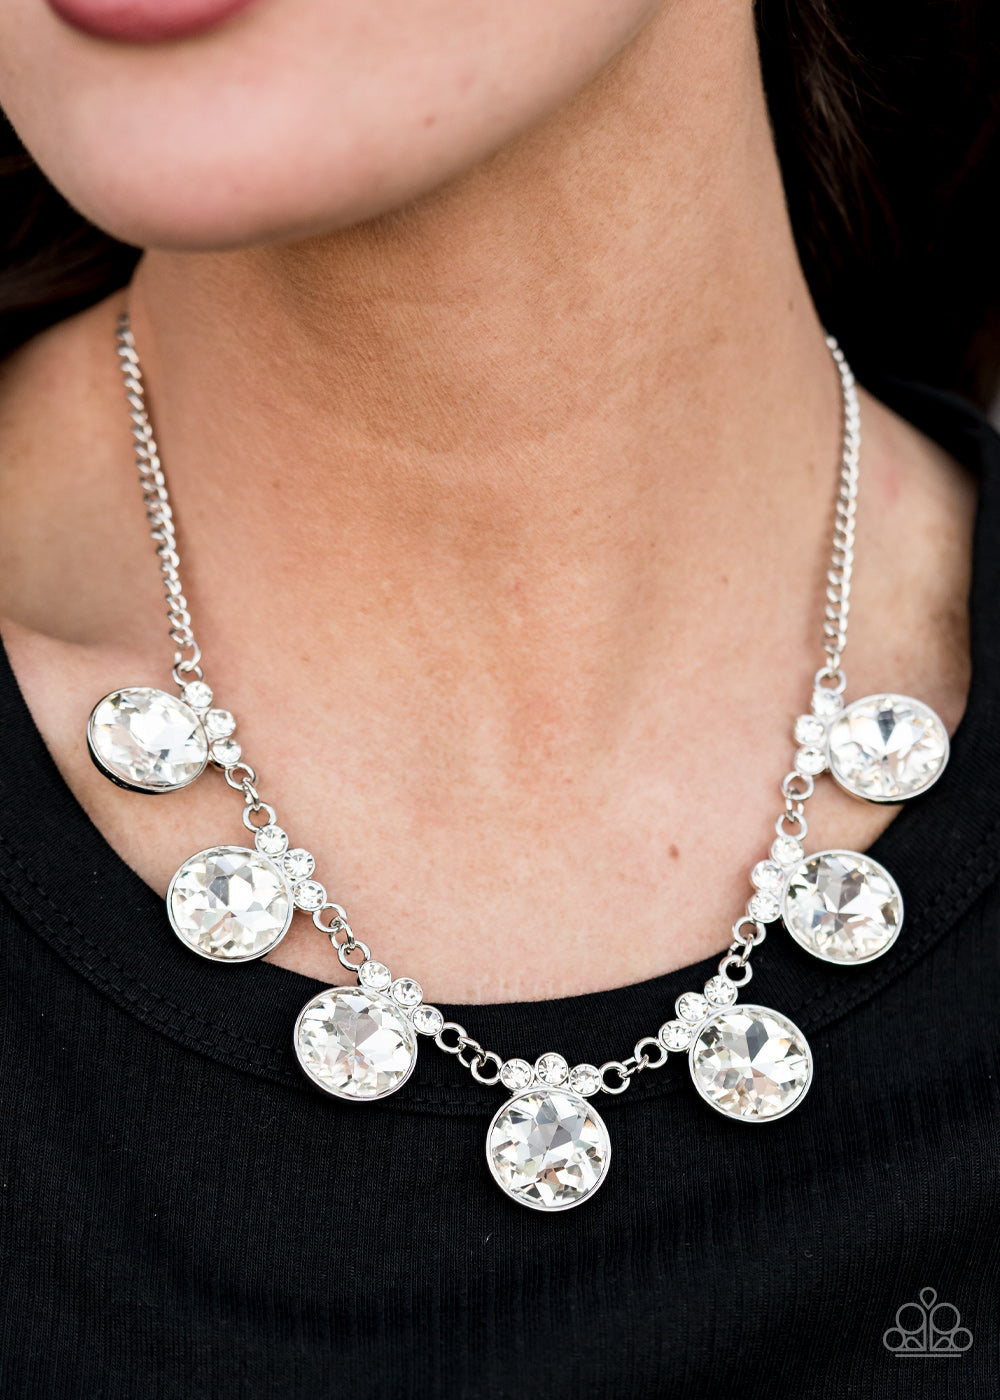 Paparazzi Jewelry & Accessories - GLOW-Getter Glamour - White Necklace. Bling By Titia Boutique